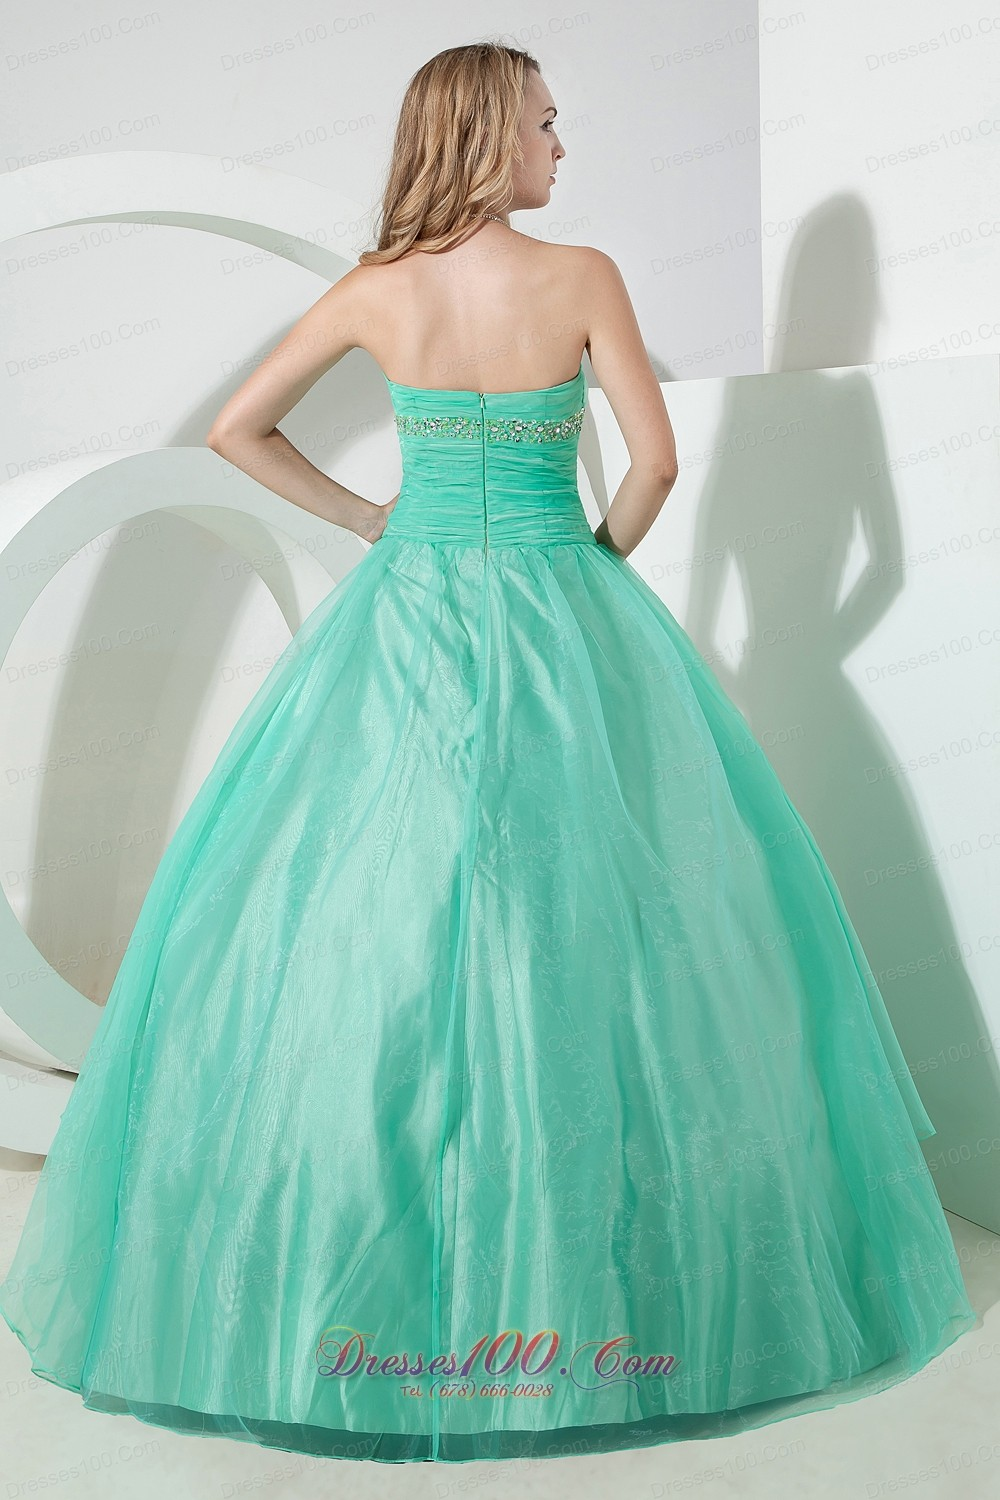 Beading and Embroidery Turquoise Organza Quinceanera Dress